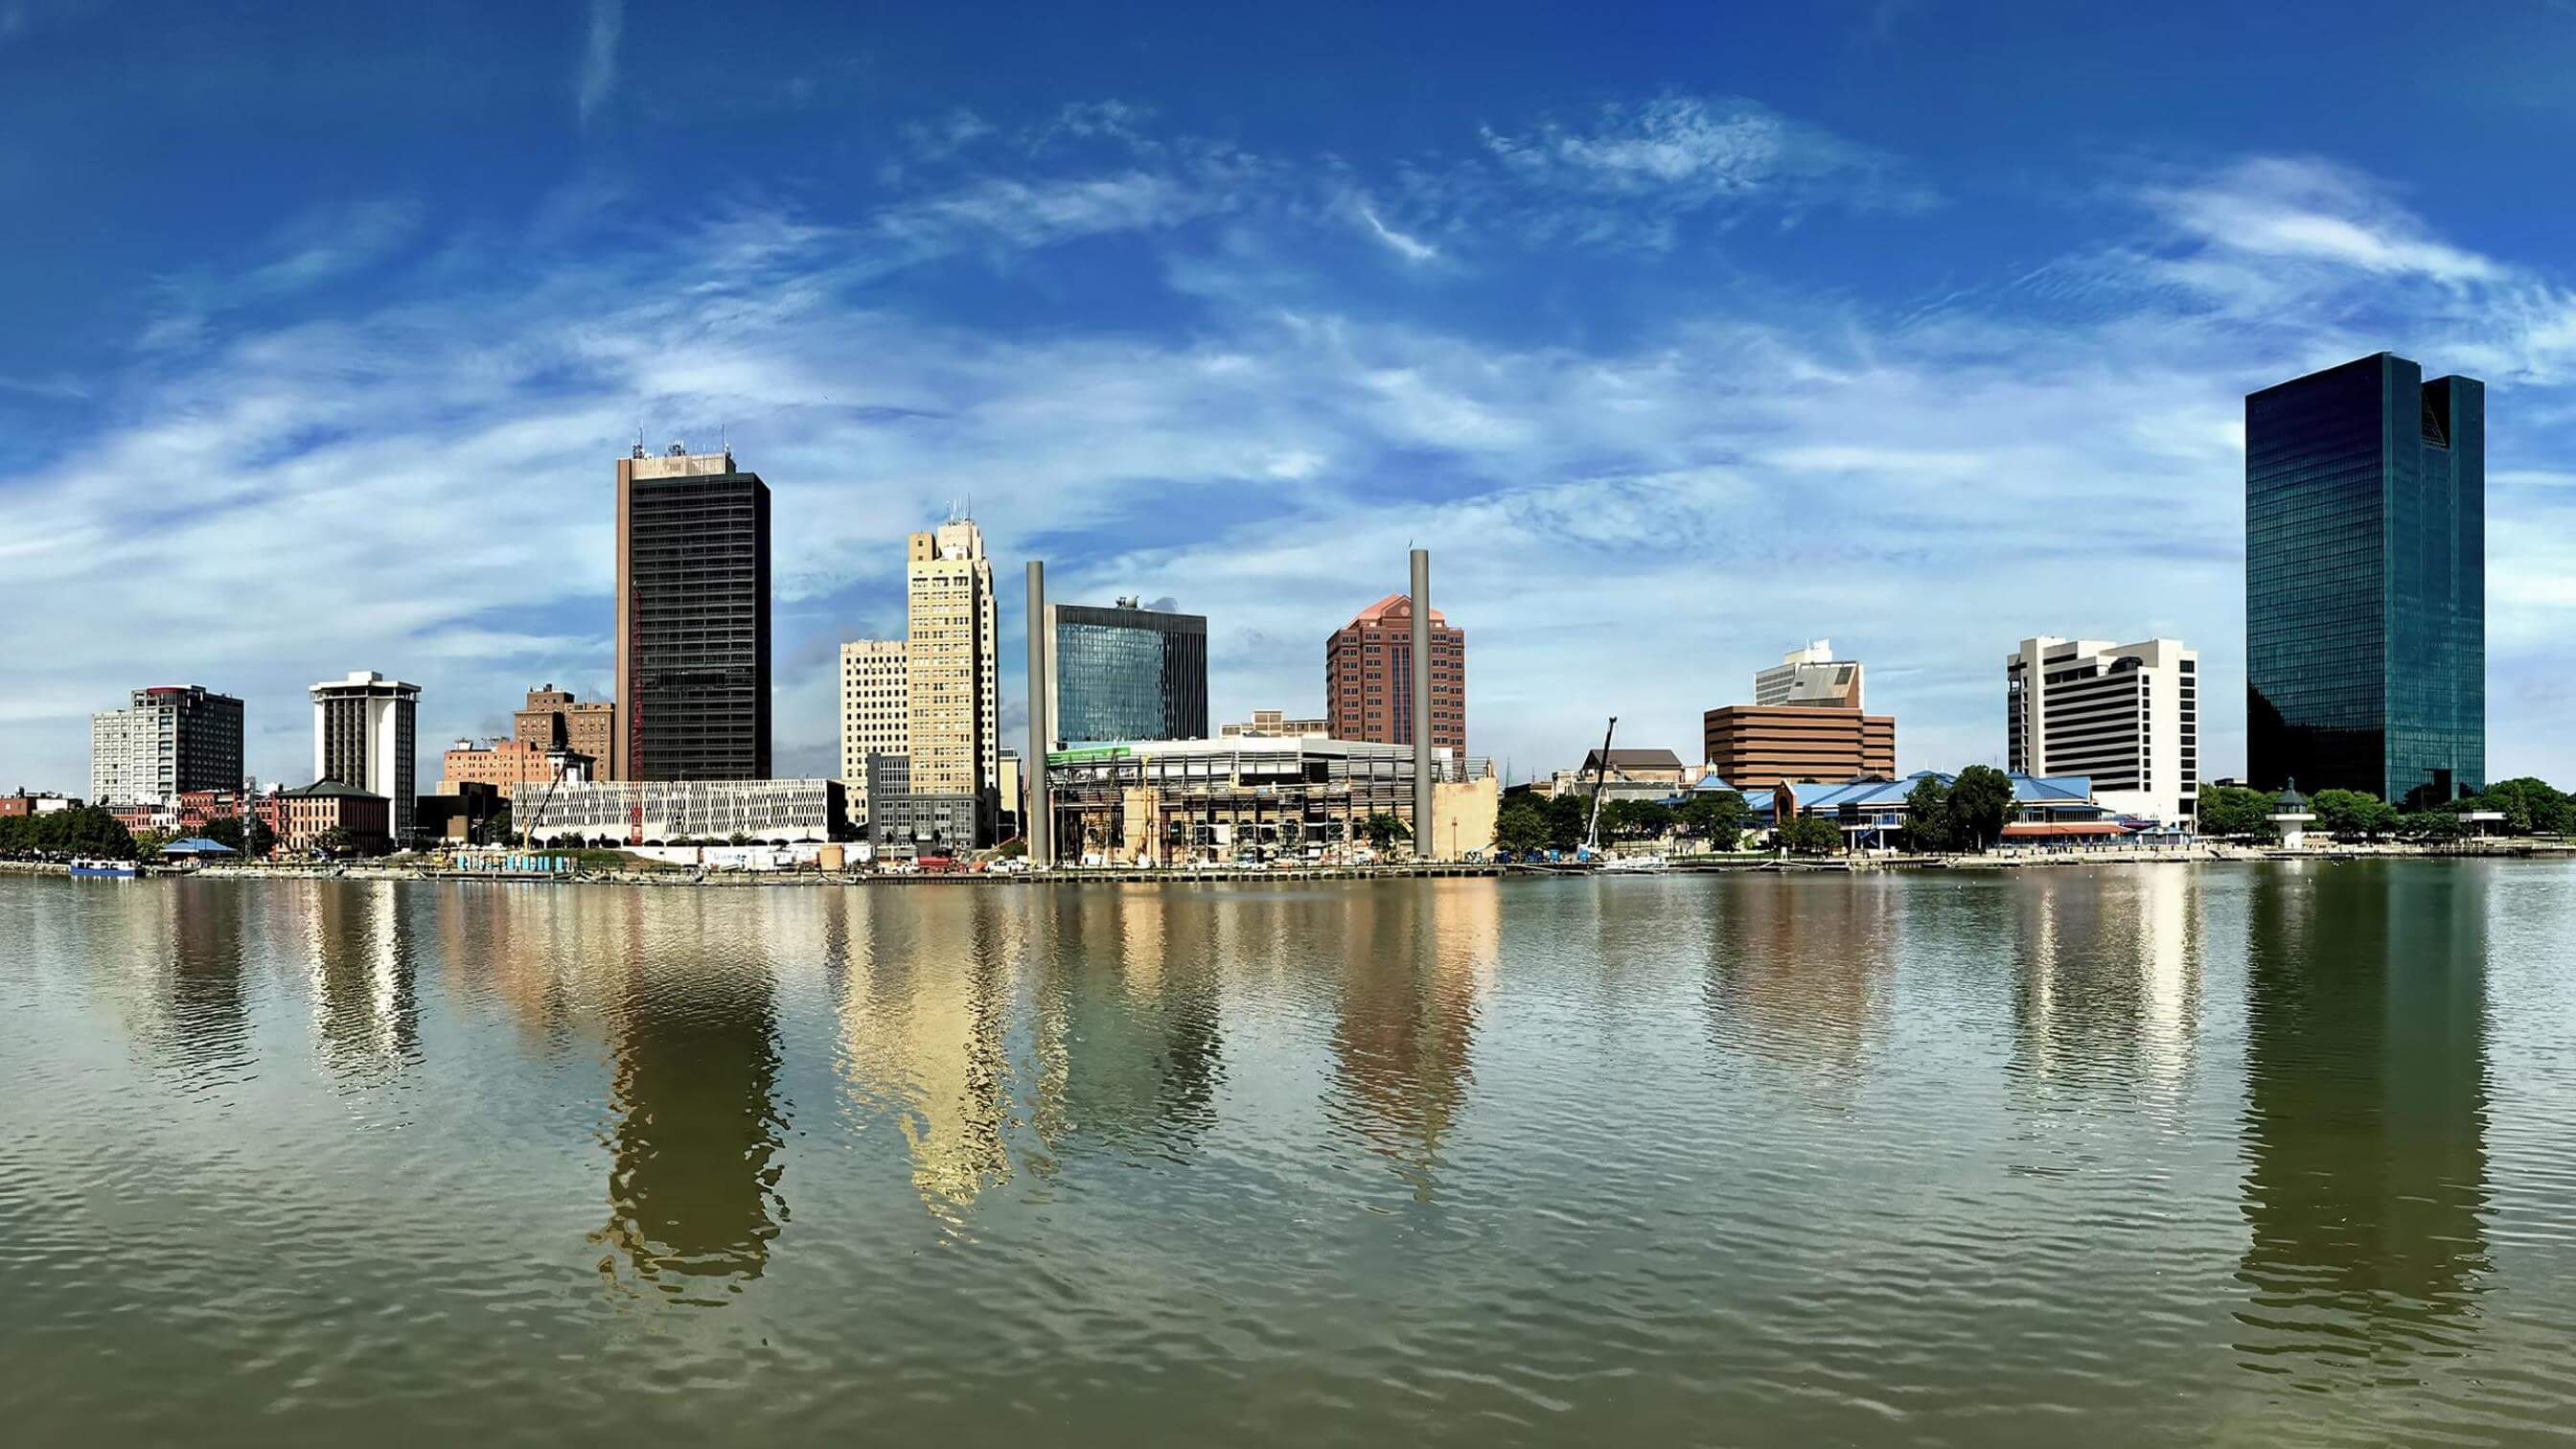 Ohio skyline from across the water